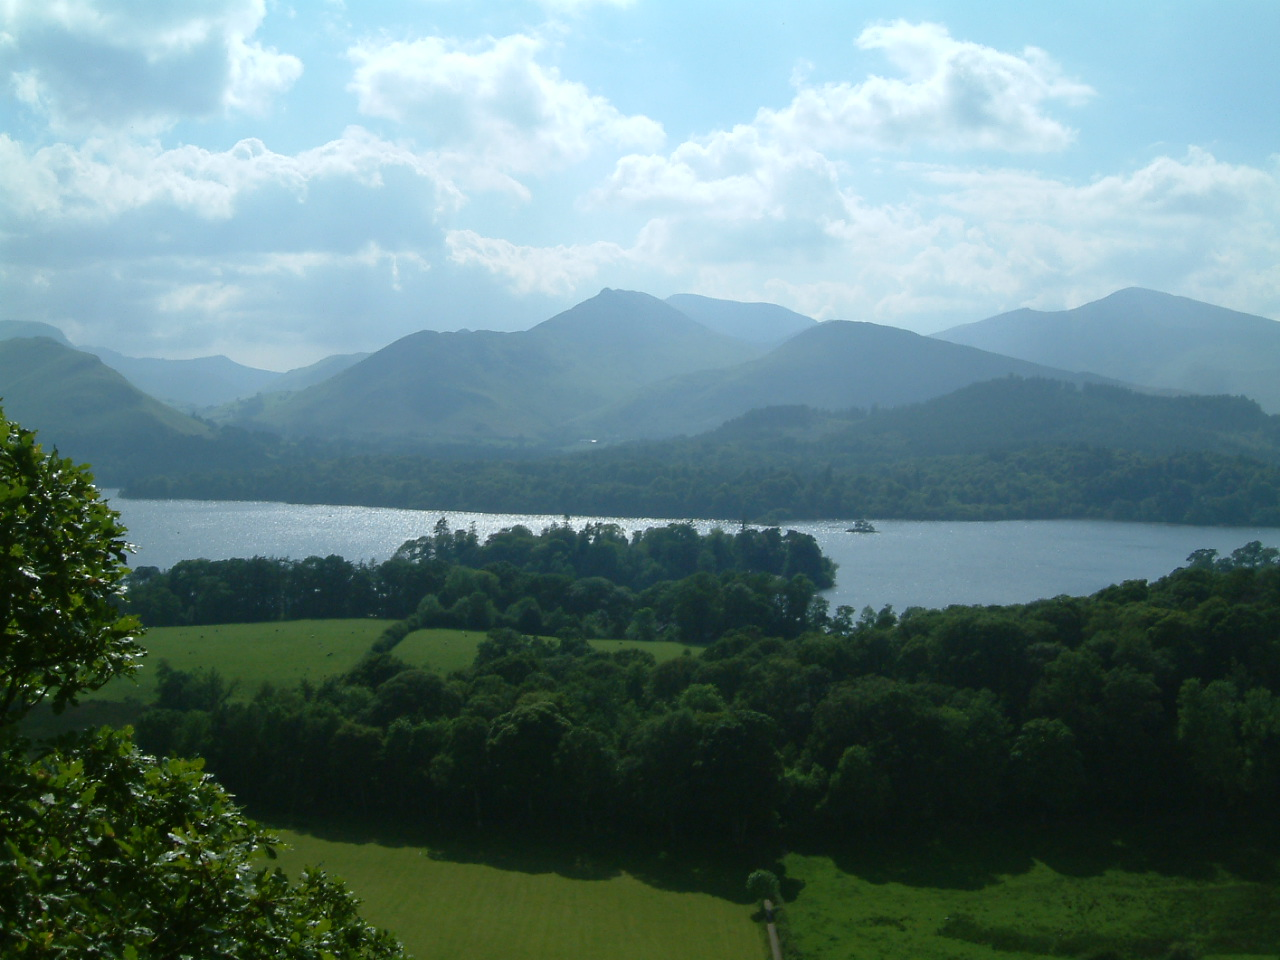 Mapping the lakes grays journal introduction after spending another night at penrith gray then travelled to keswick where he stayed from 2nd 8th october making visits to derwentwater grange publicscrutiny Image collections